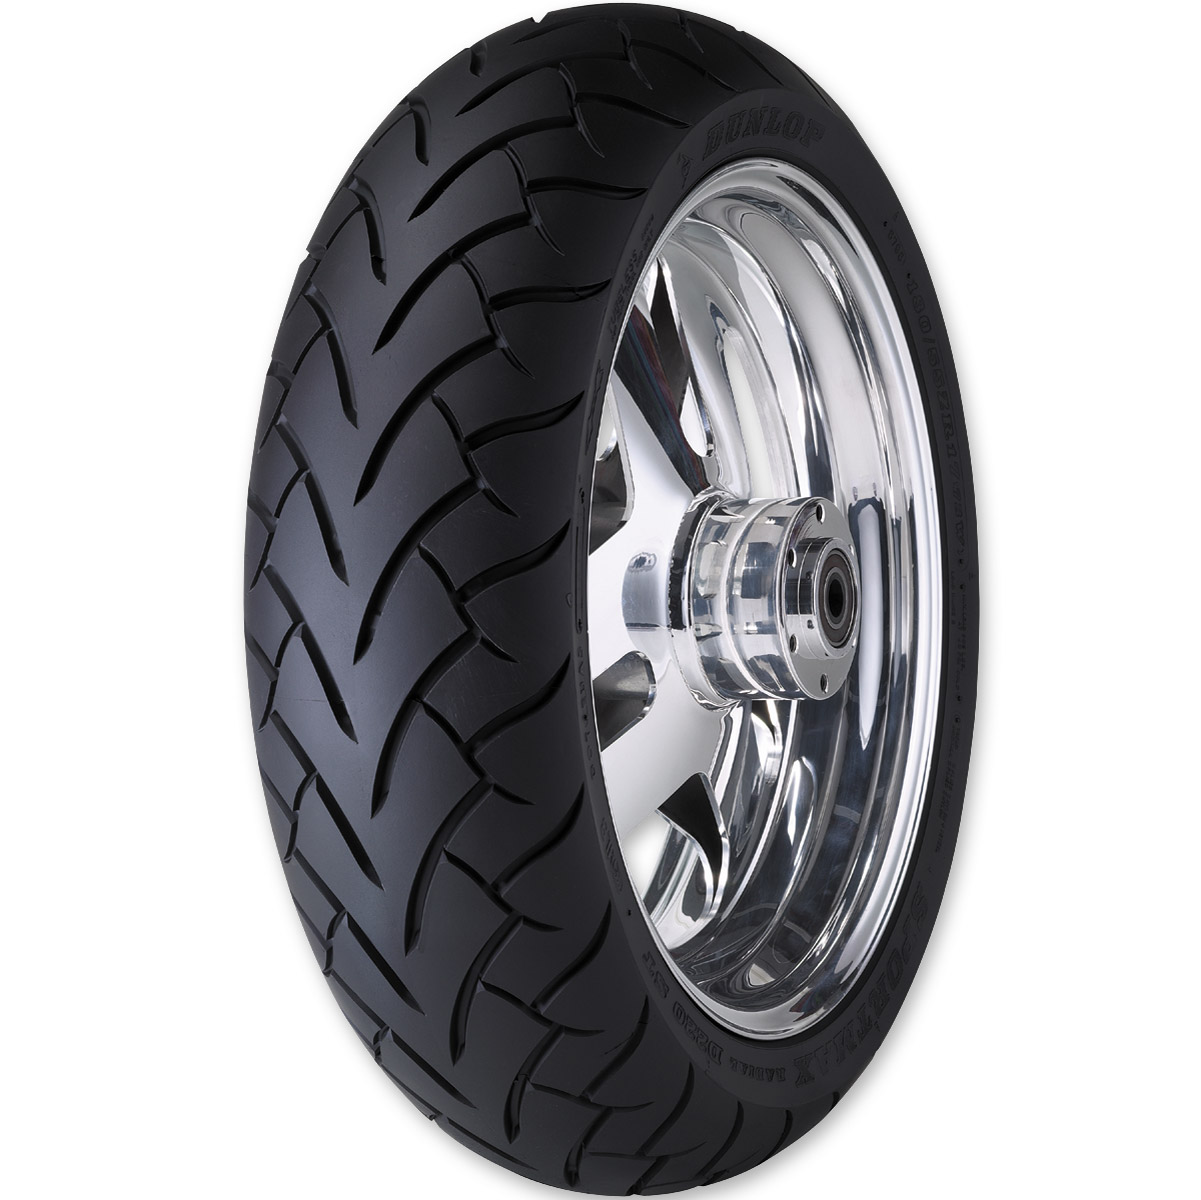 Dunlop D220 160/60ZR17 Rear Tire